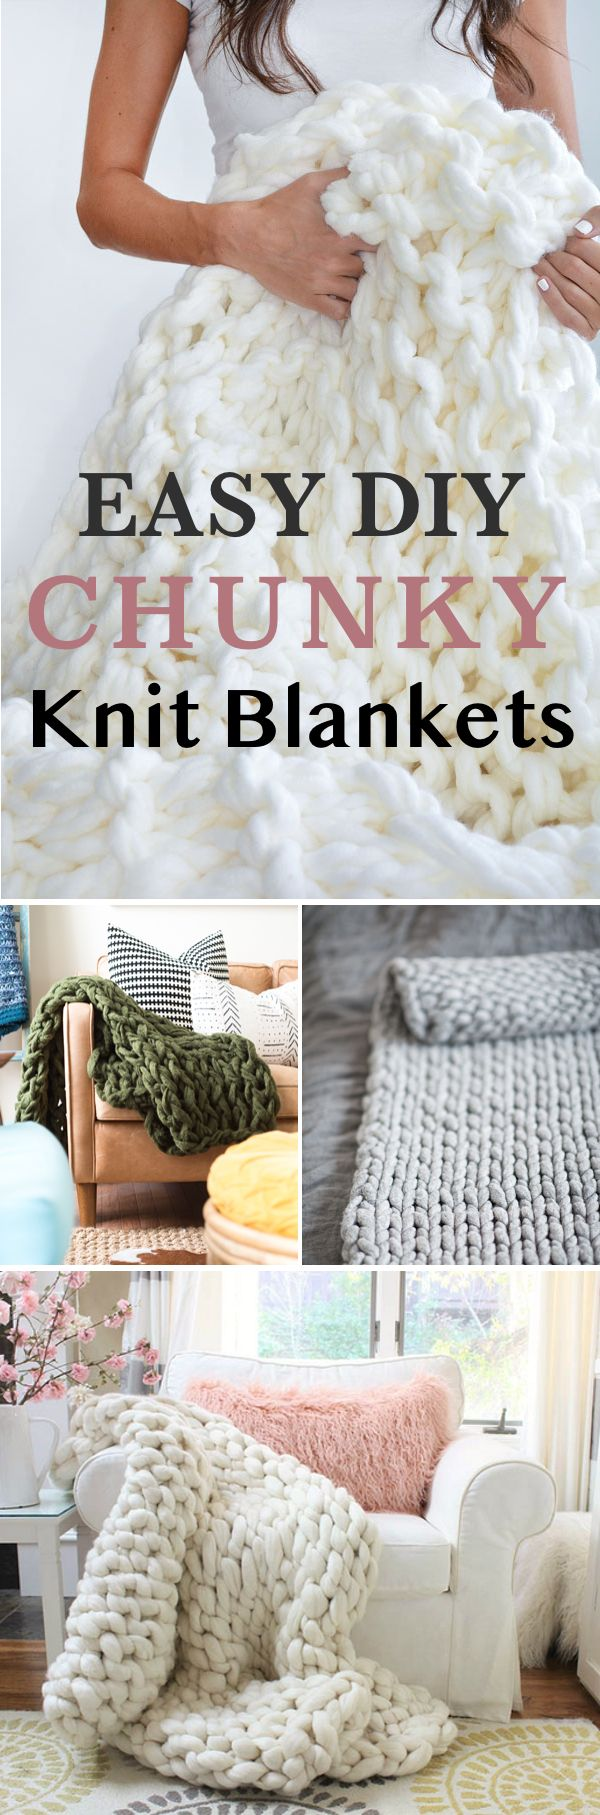 Trendy chunky knit blankets DIY tutorials! Learn how to arm knit your cozy blanket with easy instructions!